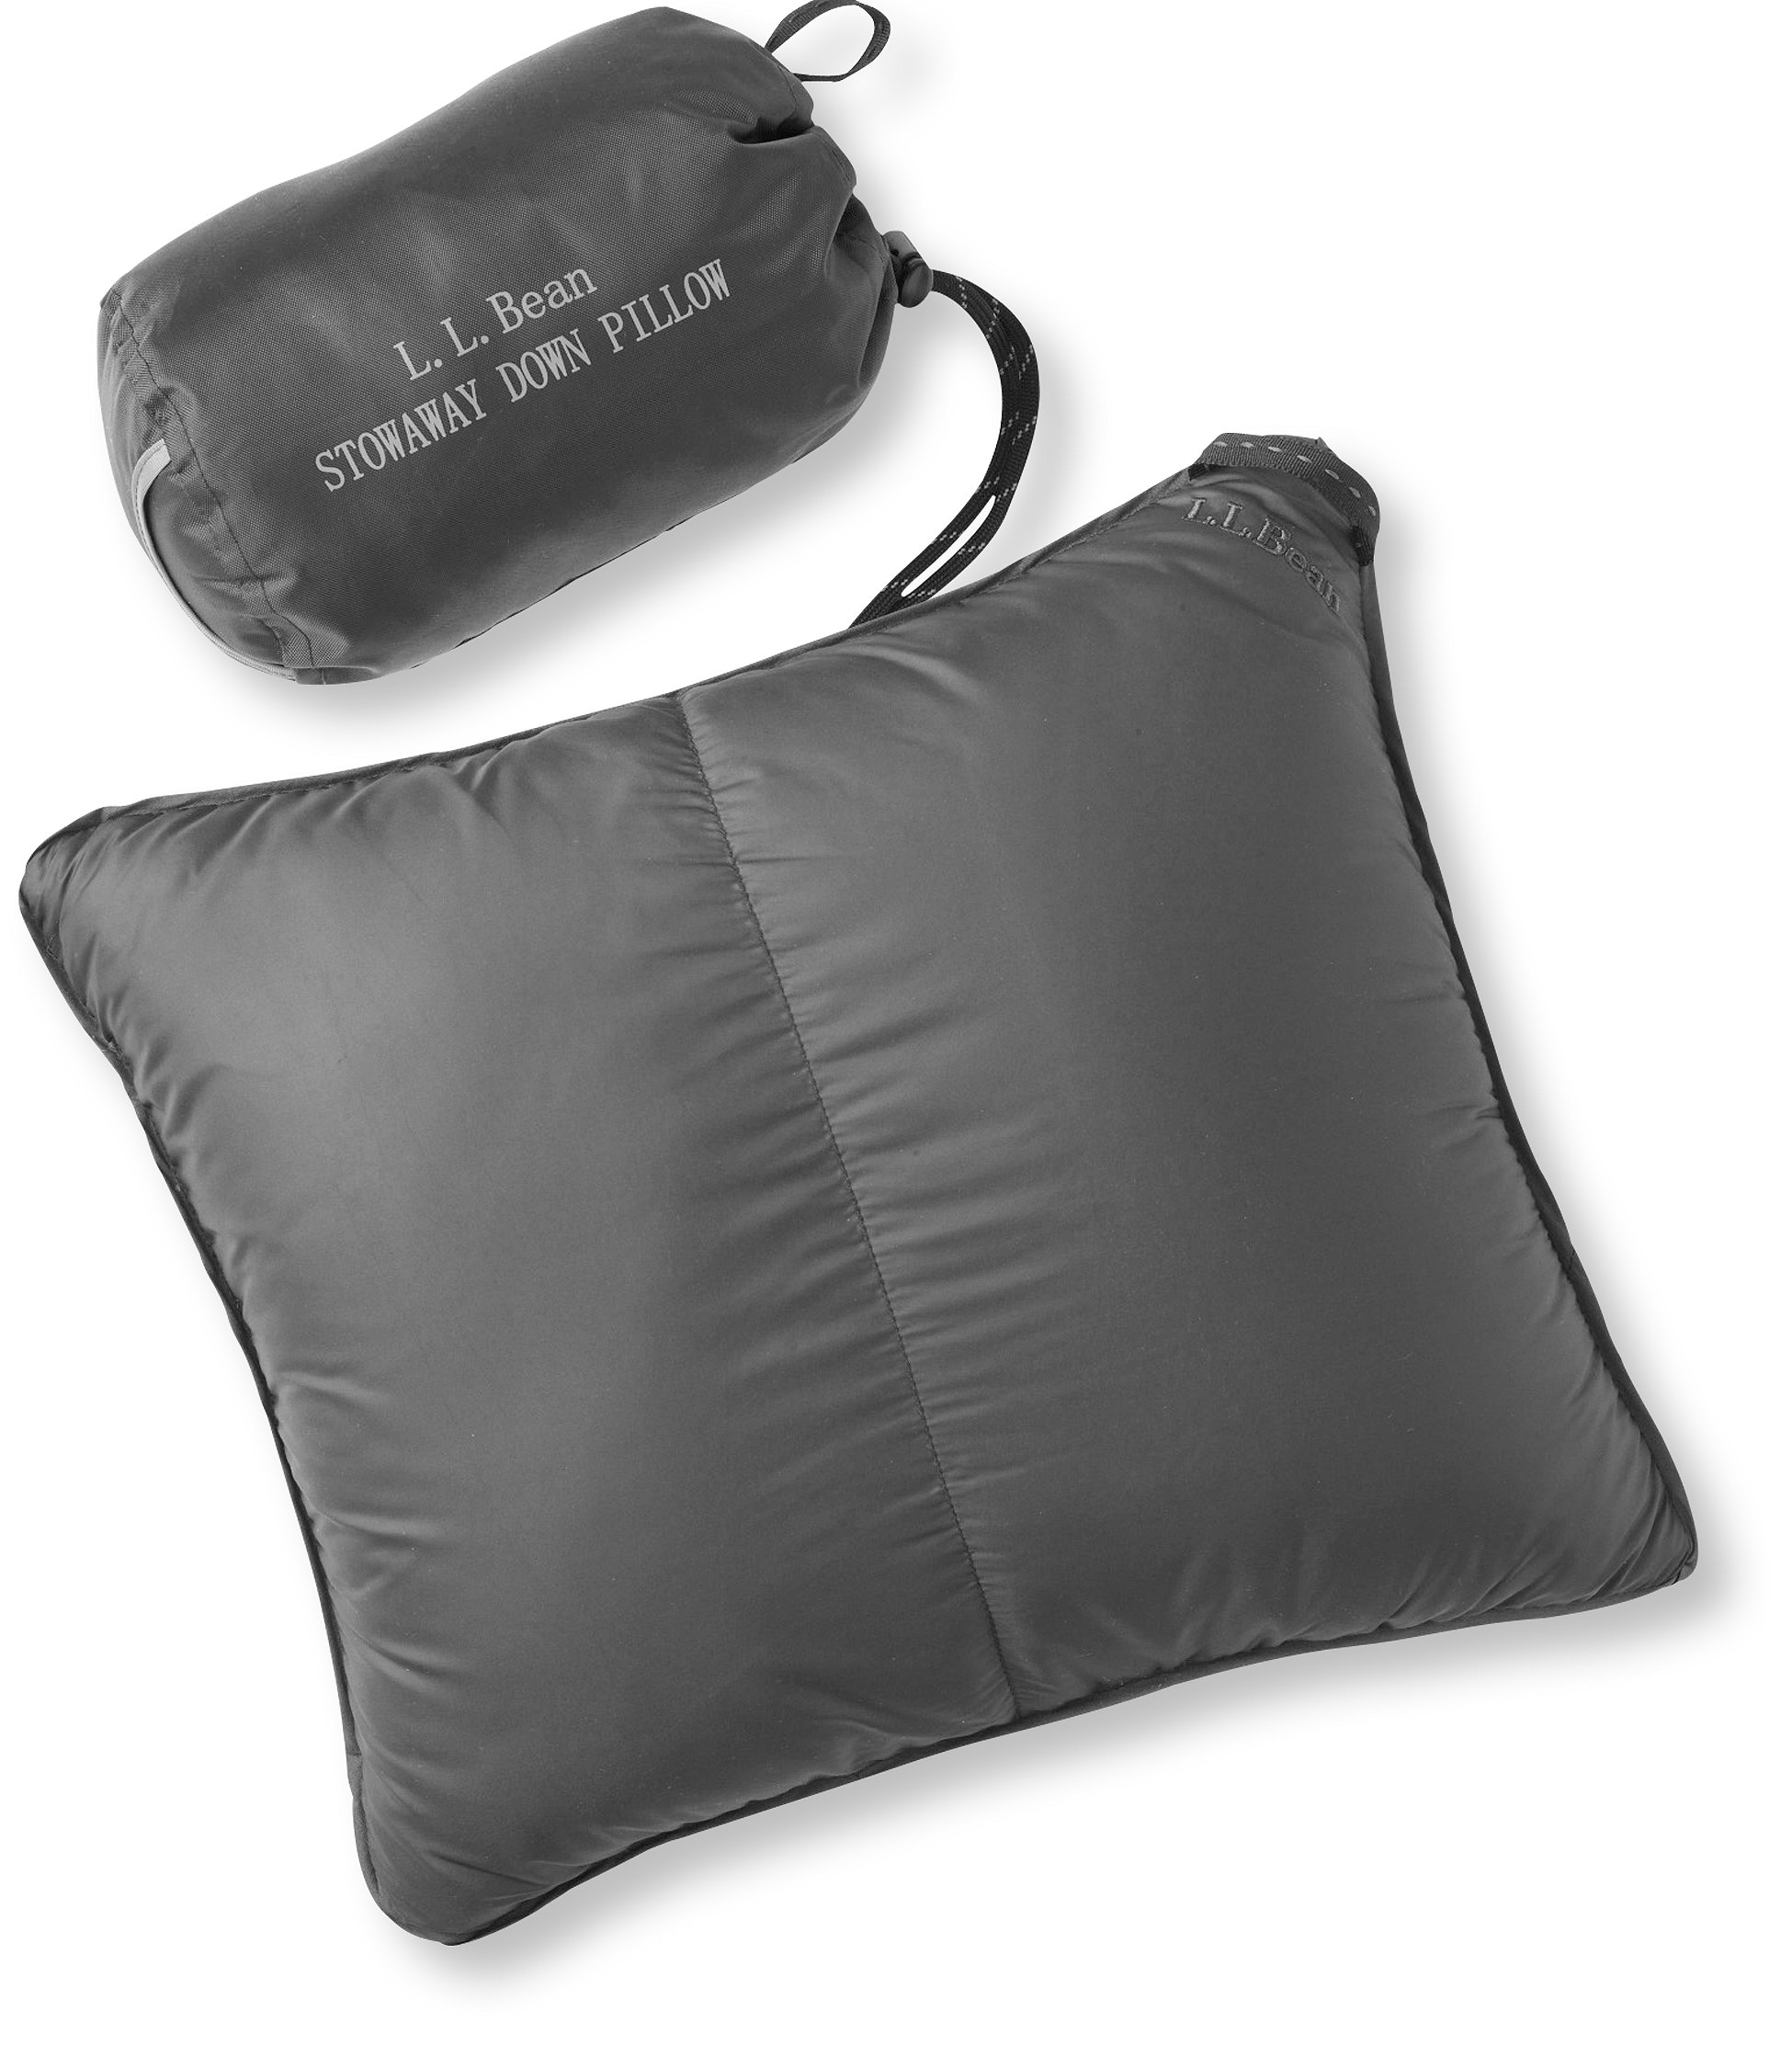 L.L.Bean Stowaway Down Pillow with DownTek